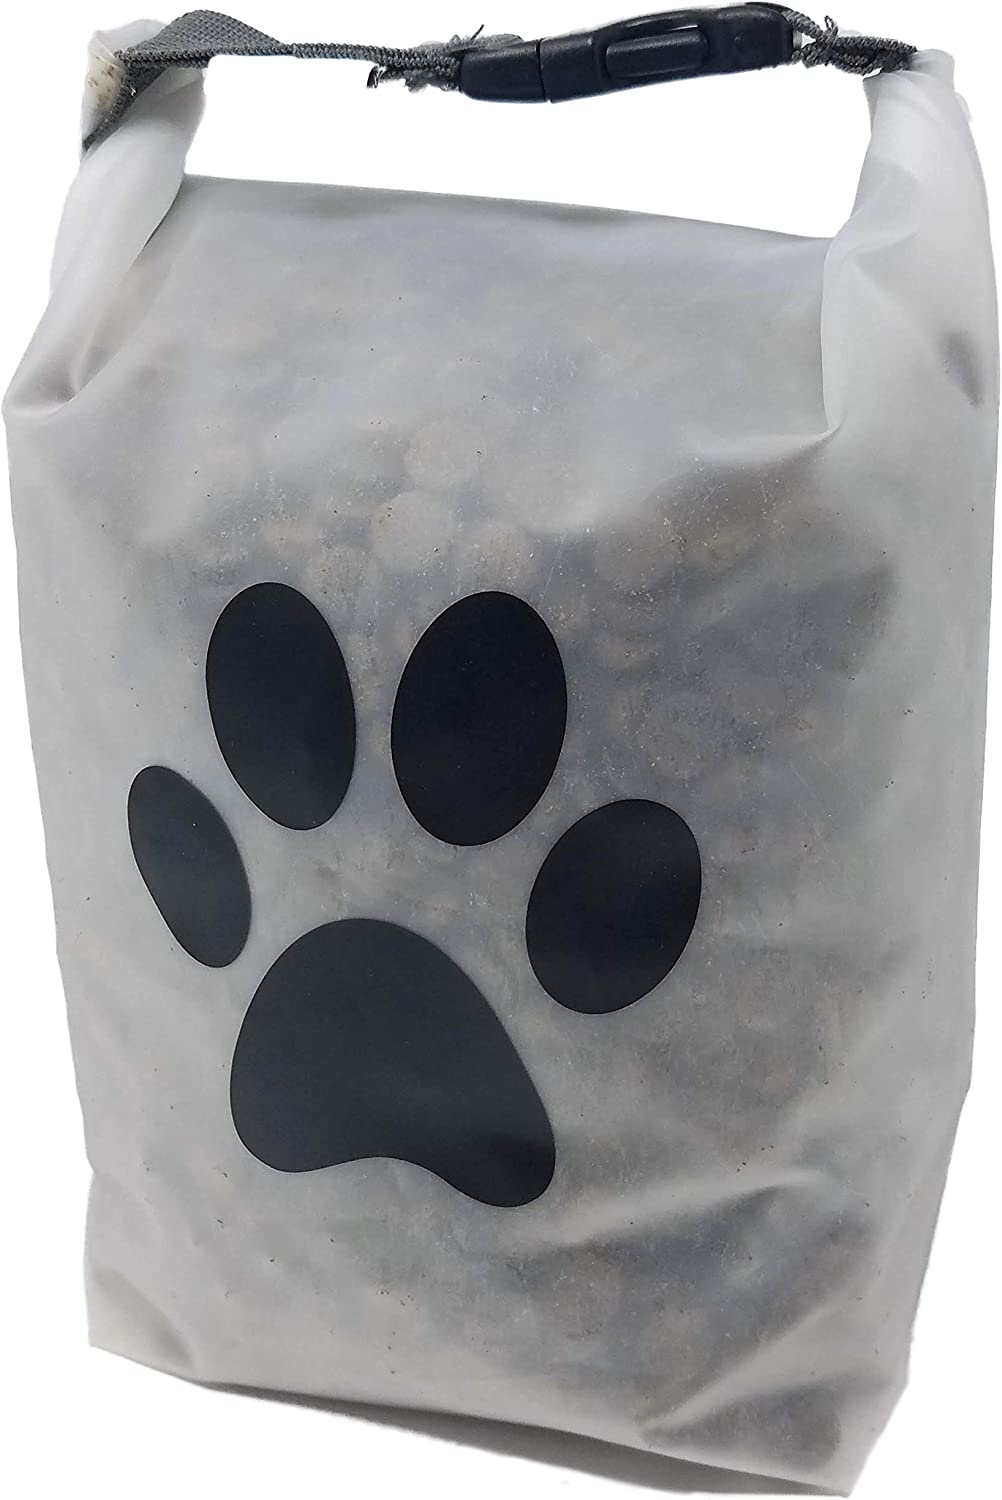 Rezip Roll Top Reusable Pet Food Storage Bag